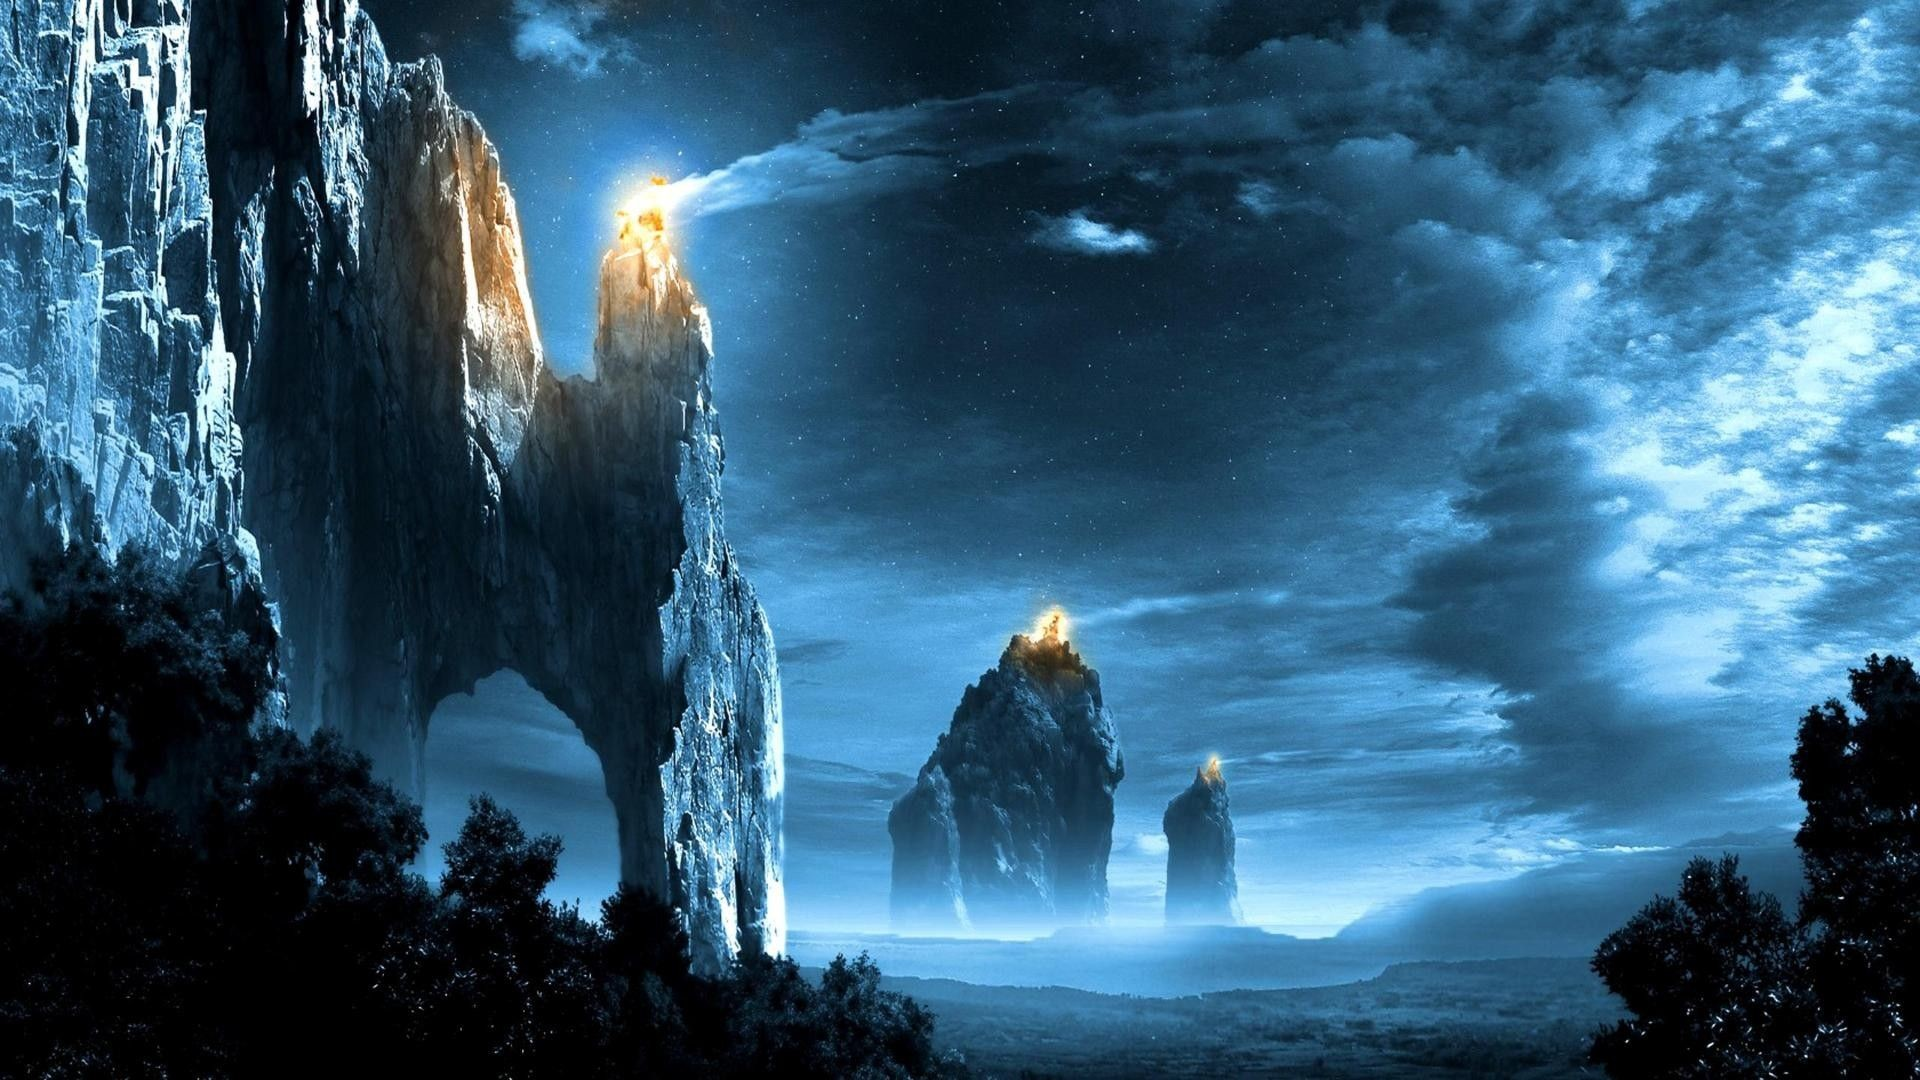 Lord Of The Rings Landscape Wallpapers Desktop